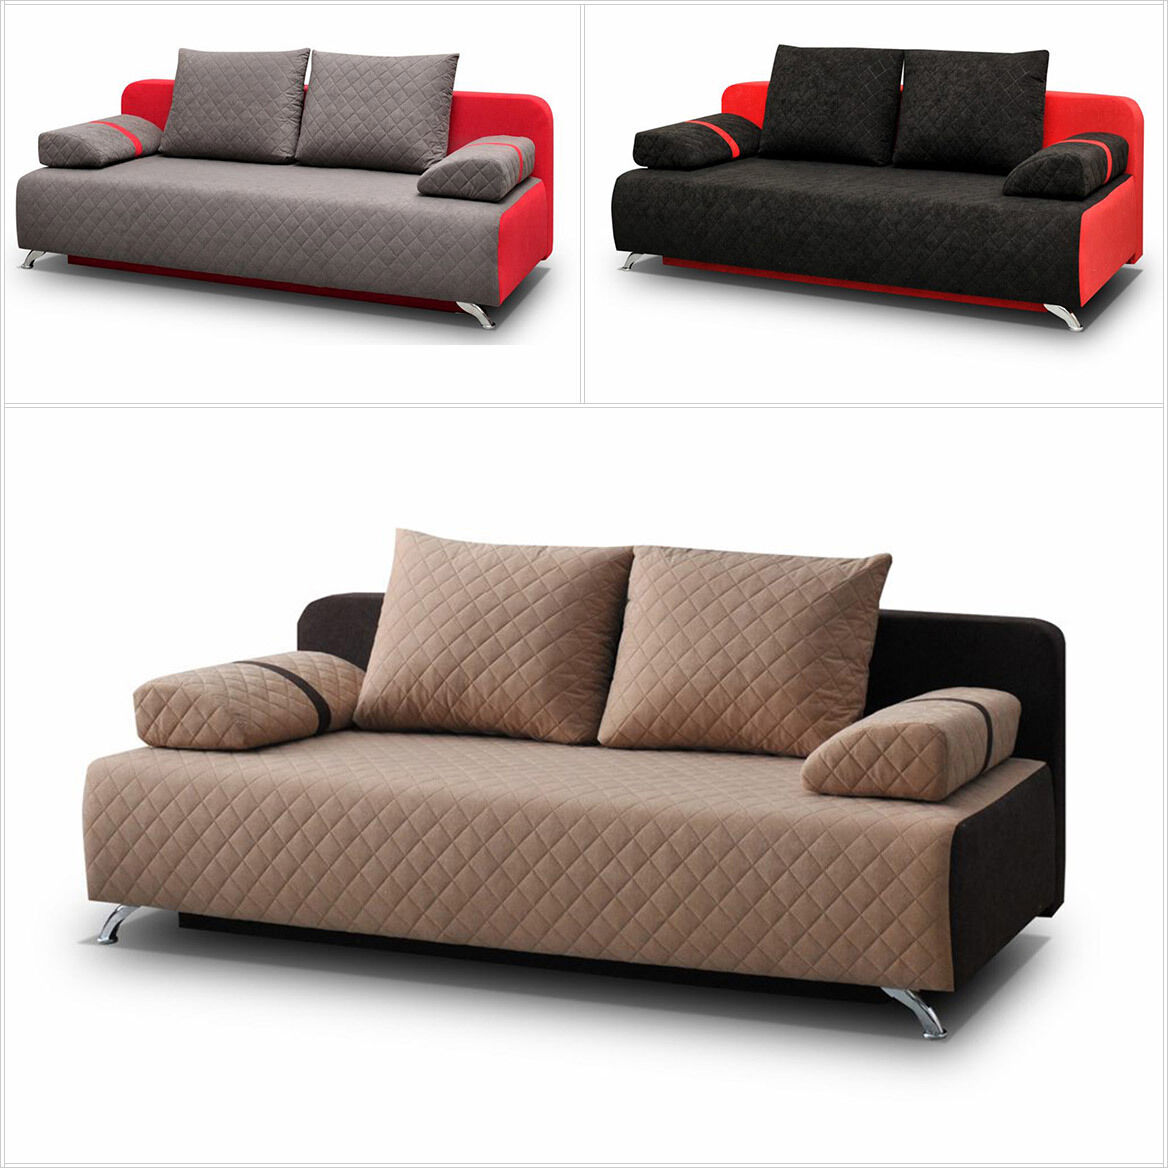 Schlafsofa manhattan sofa schlaffunktion bettkasten for Couch schlaffunktion bettkasten